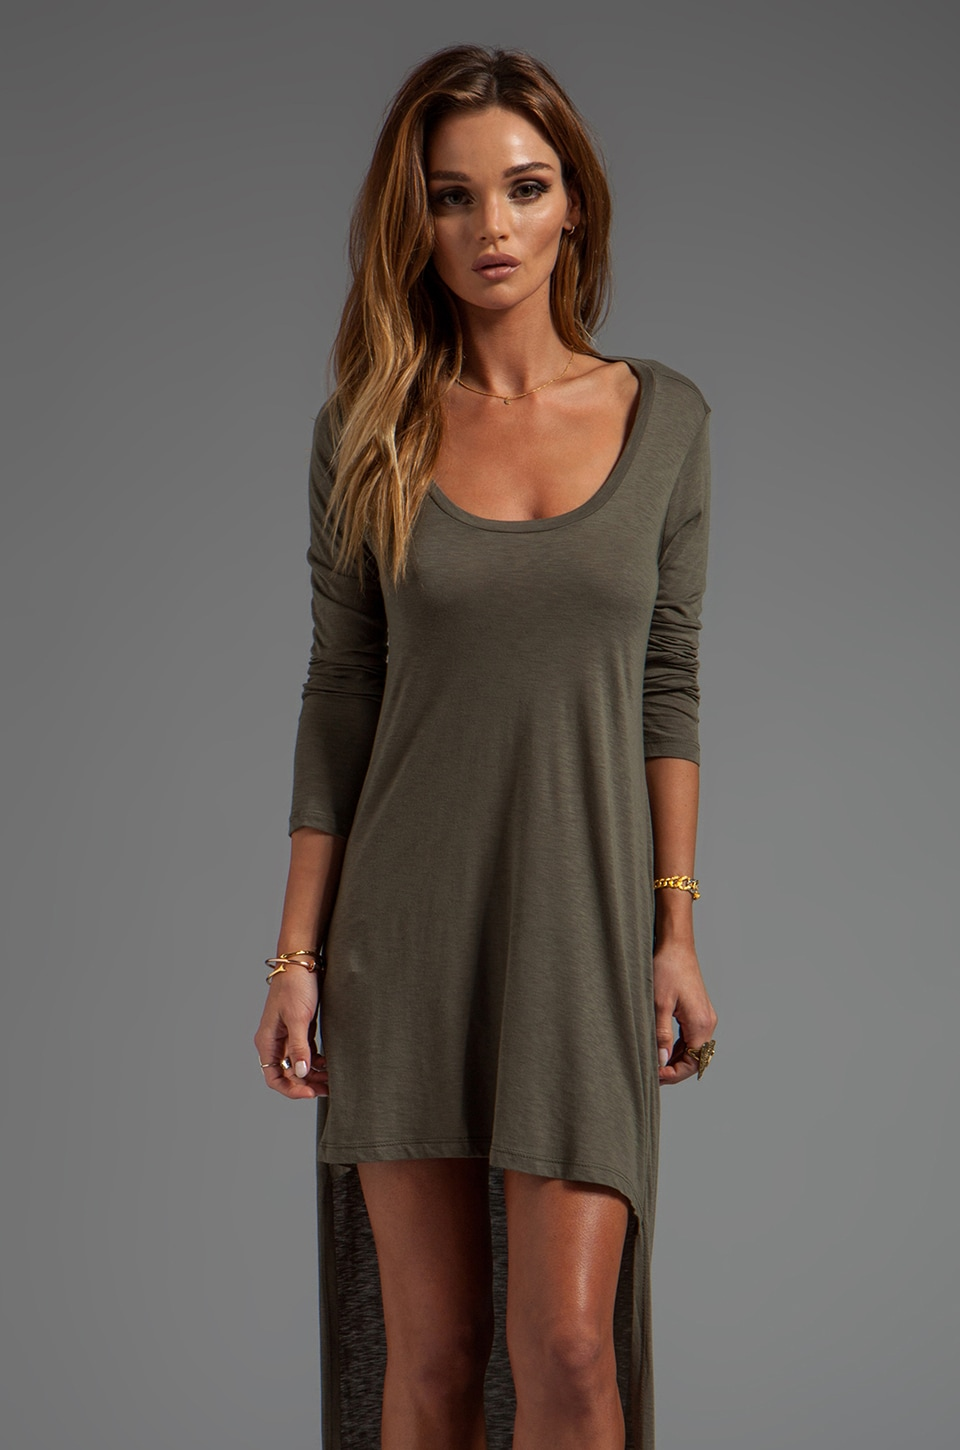 Blue Life Open Back High Low Dress in Military Green